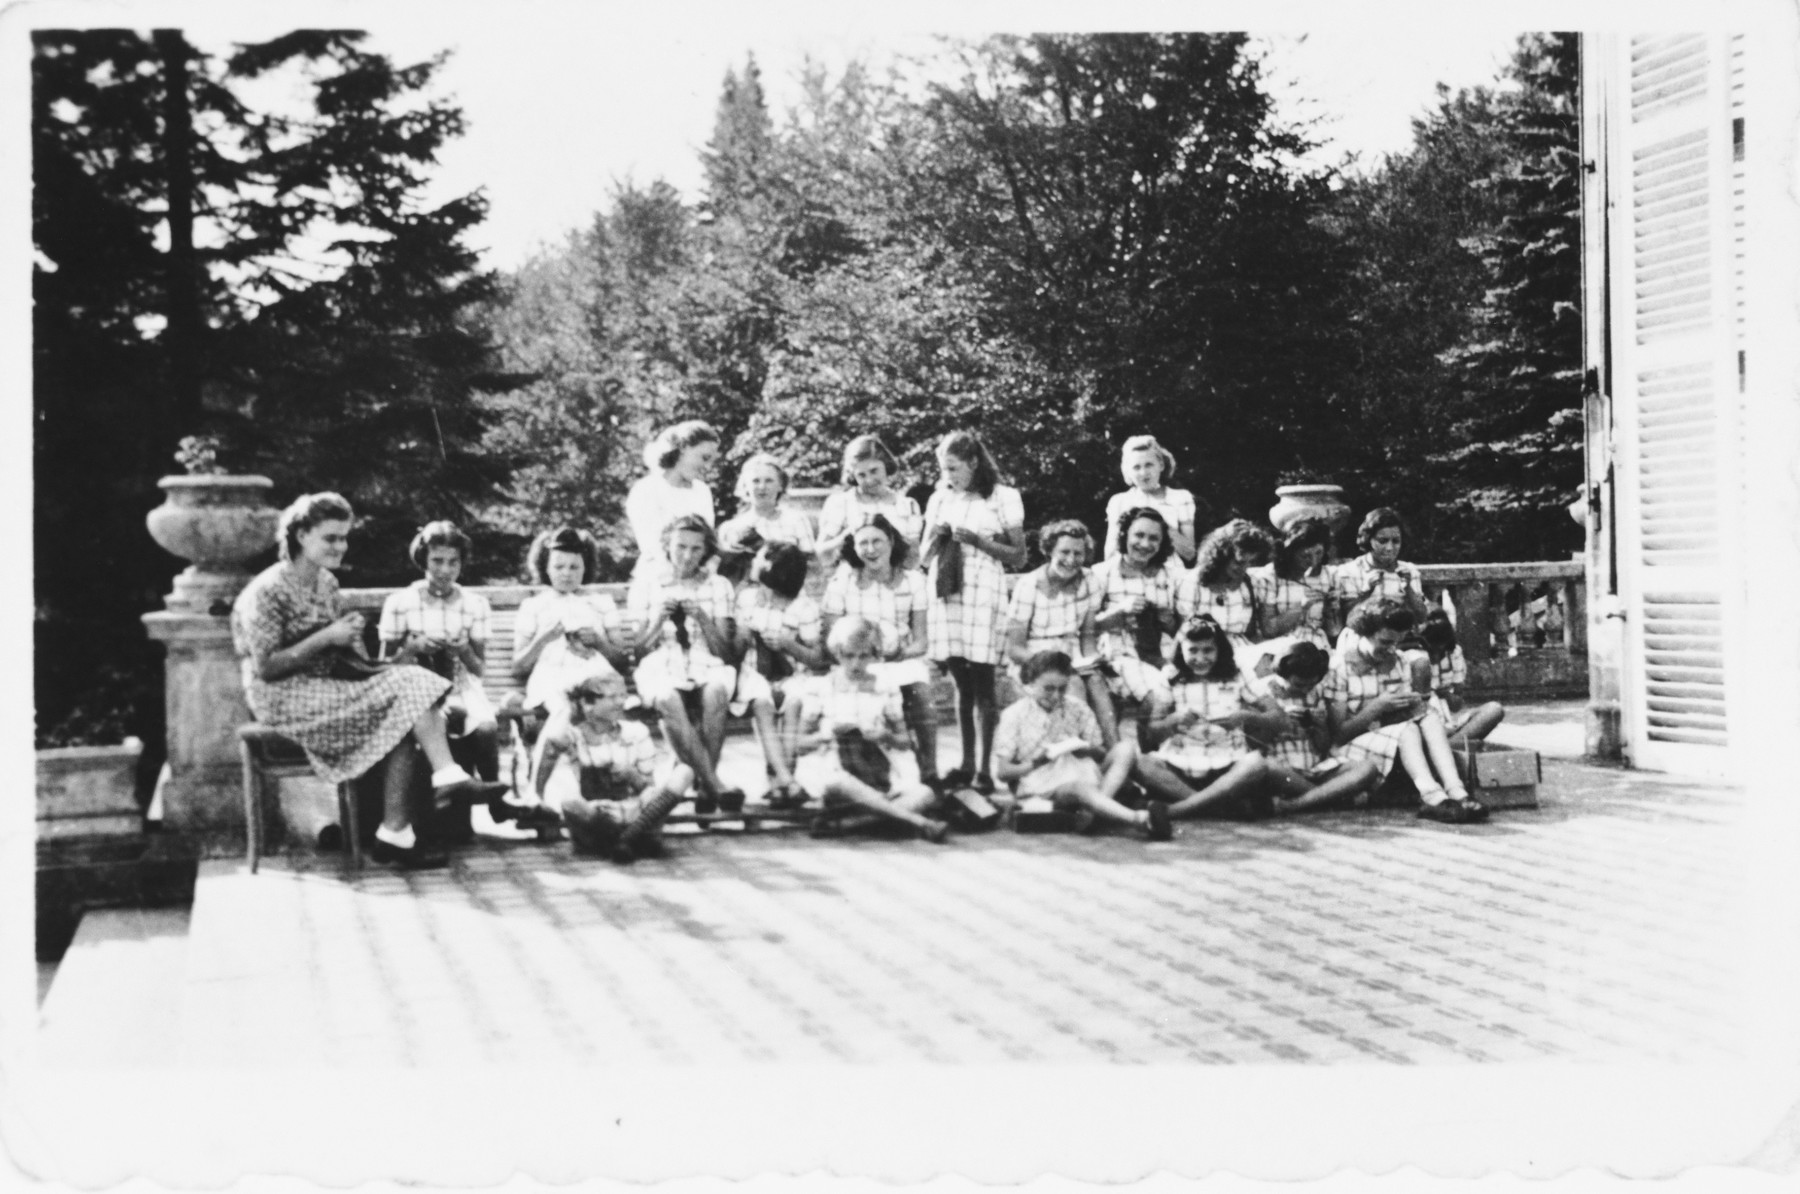 Children and staff of the Red Cross Bois d'Arlon summer camp where Hena and Pola Kohn were hidden during the summer of 1942.